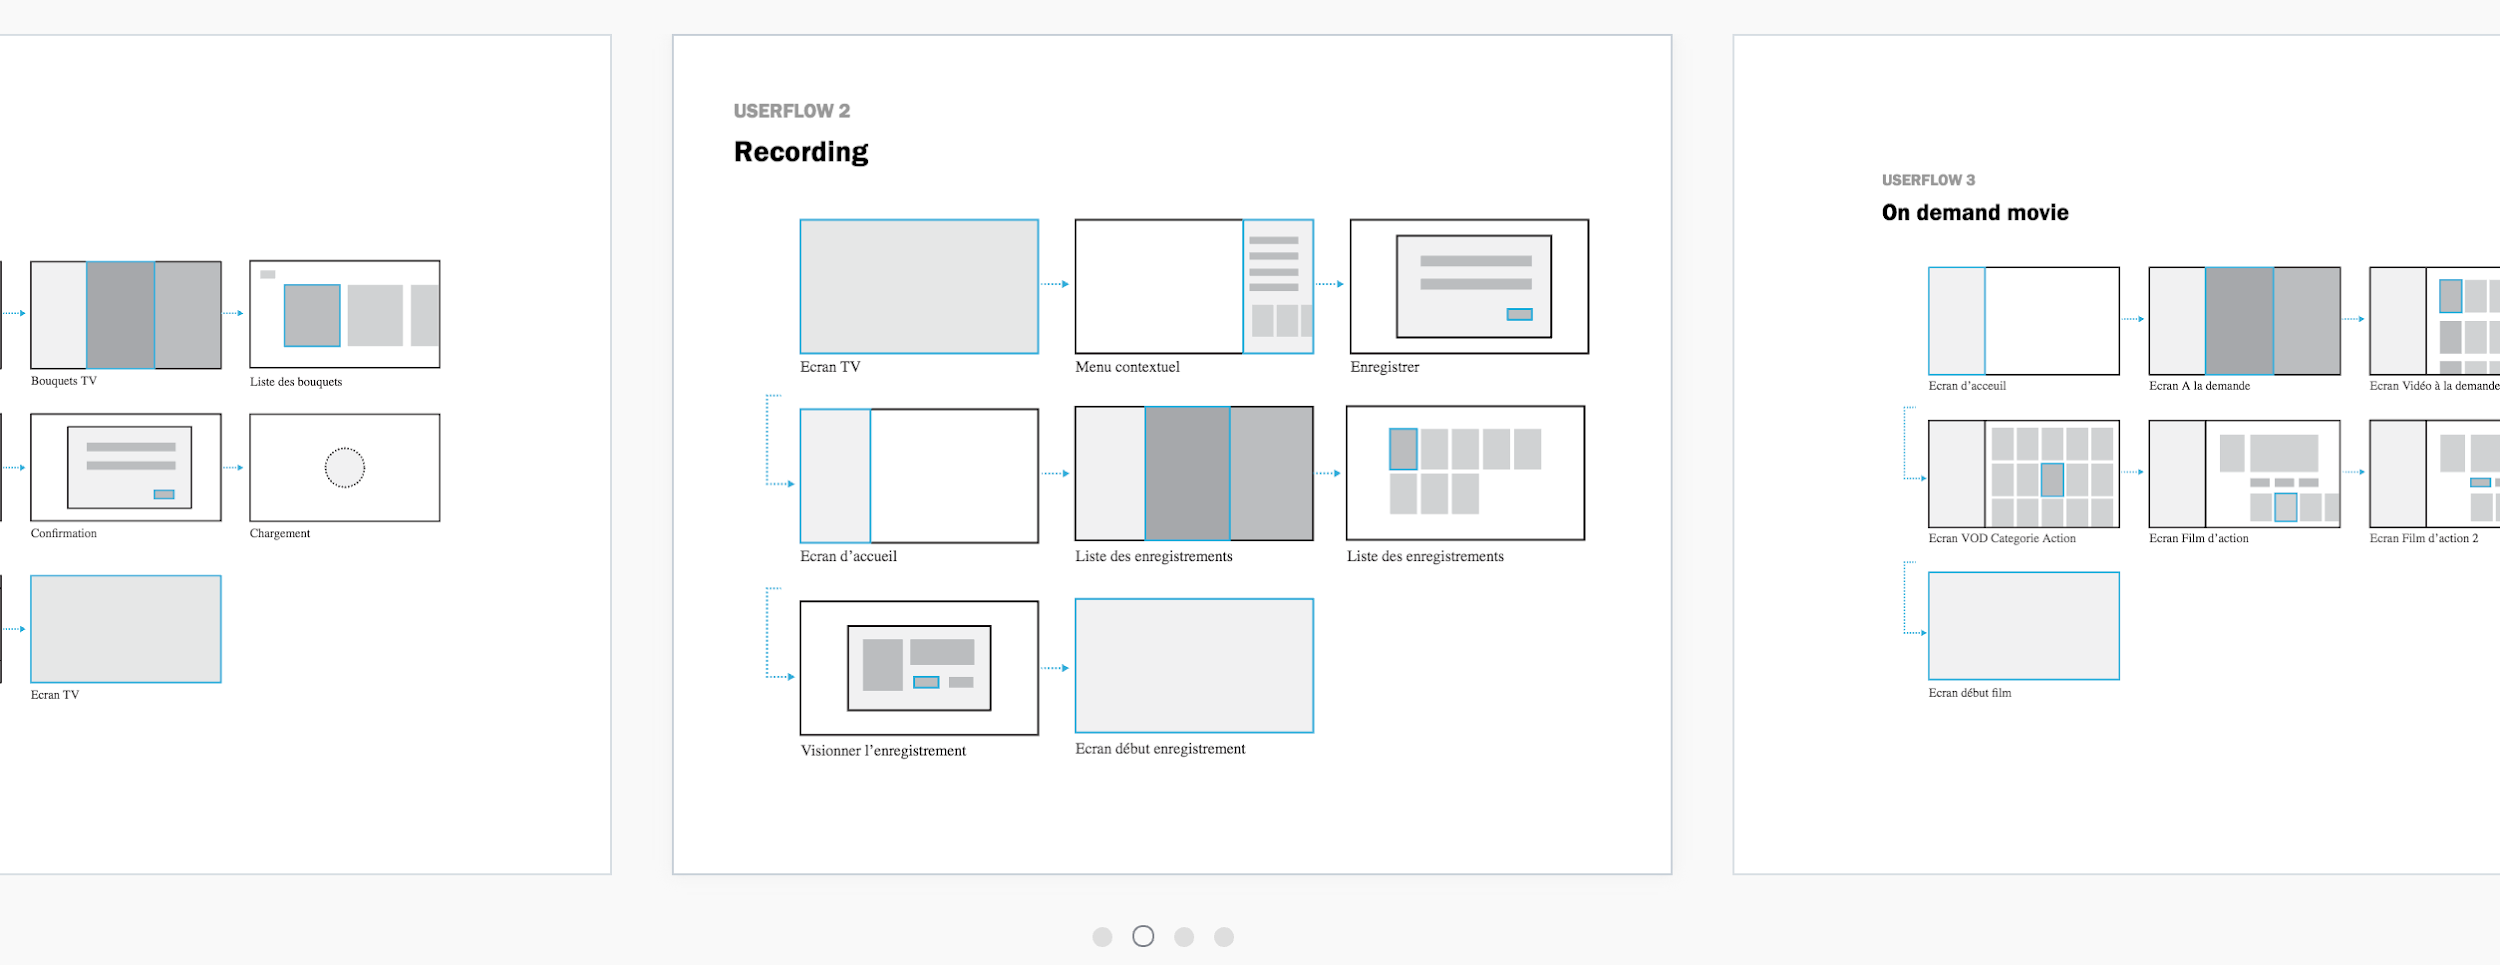 Showing the UX design process is the hallmark of the best UX design portfolios.